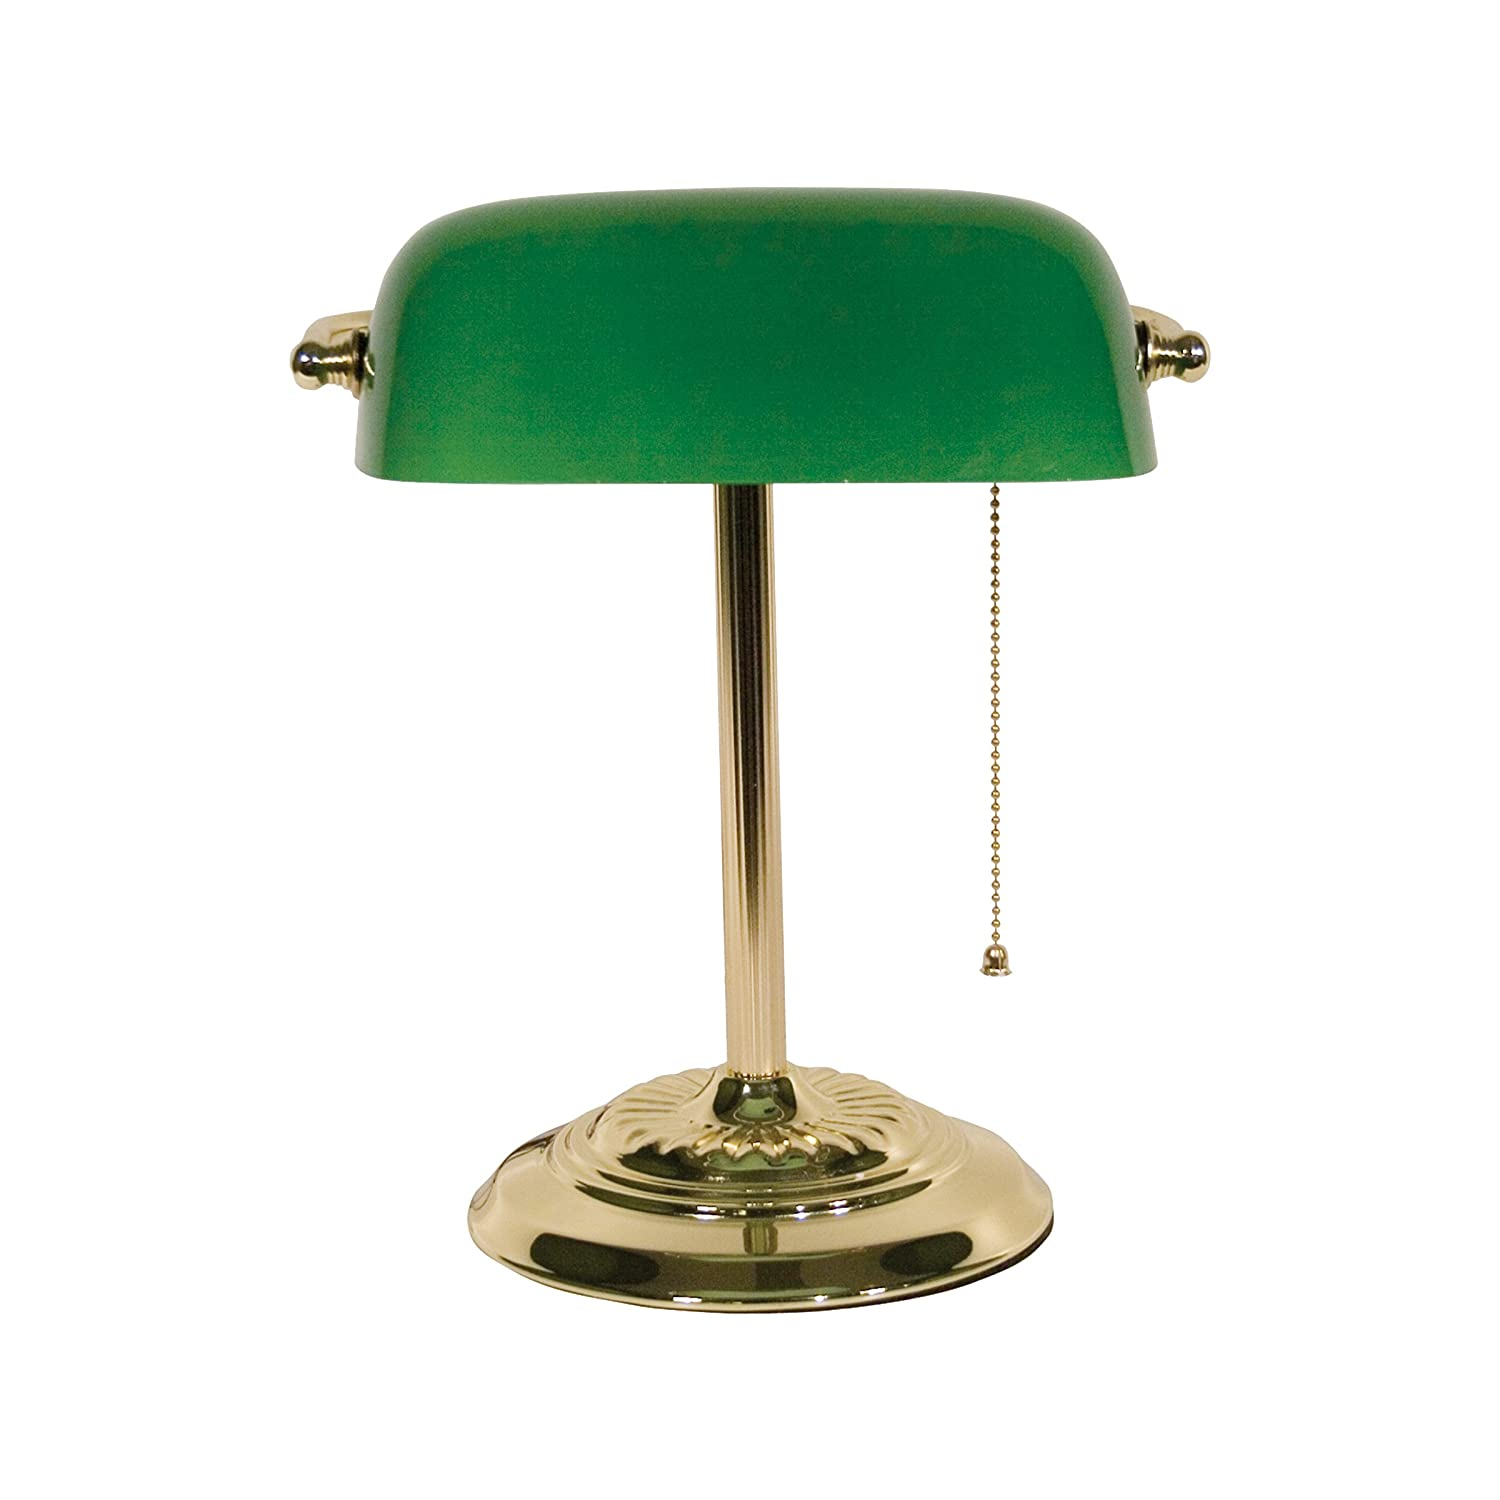 Amazon ledu l557br traditional bankers lamp 14 high brass amazon ledu l557br traditional bankers lamp 14 high brass base with green shade desk lamps office products aloadofball Images